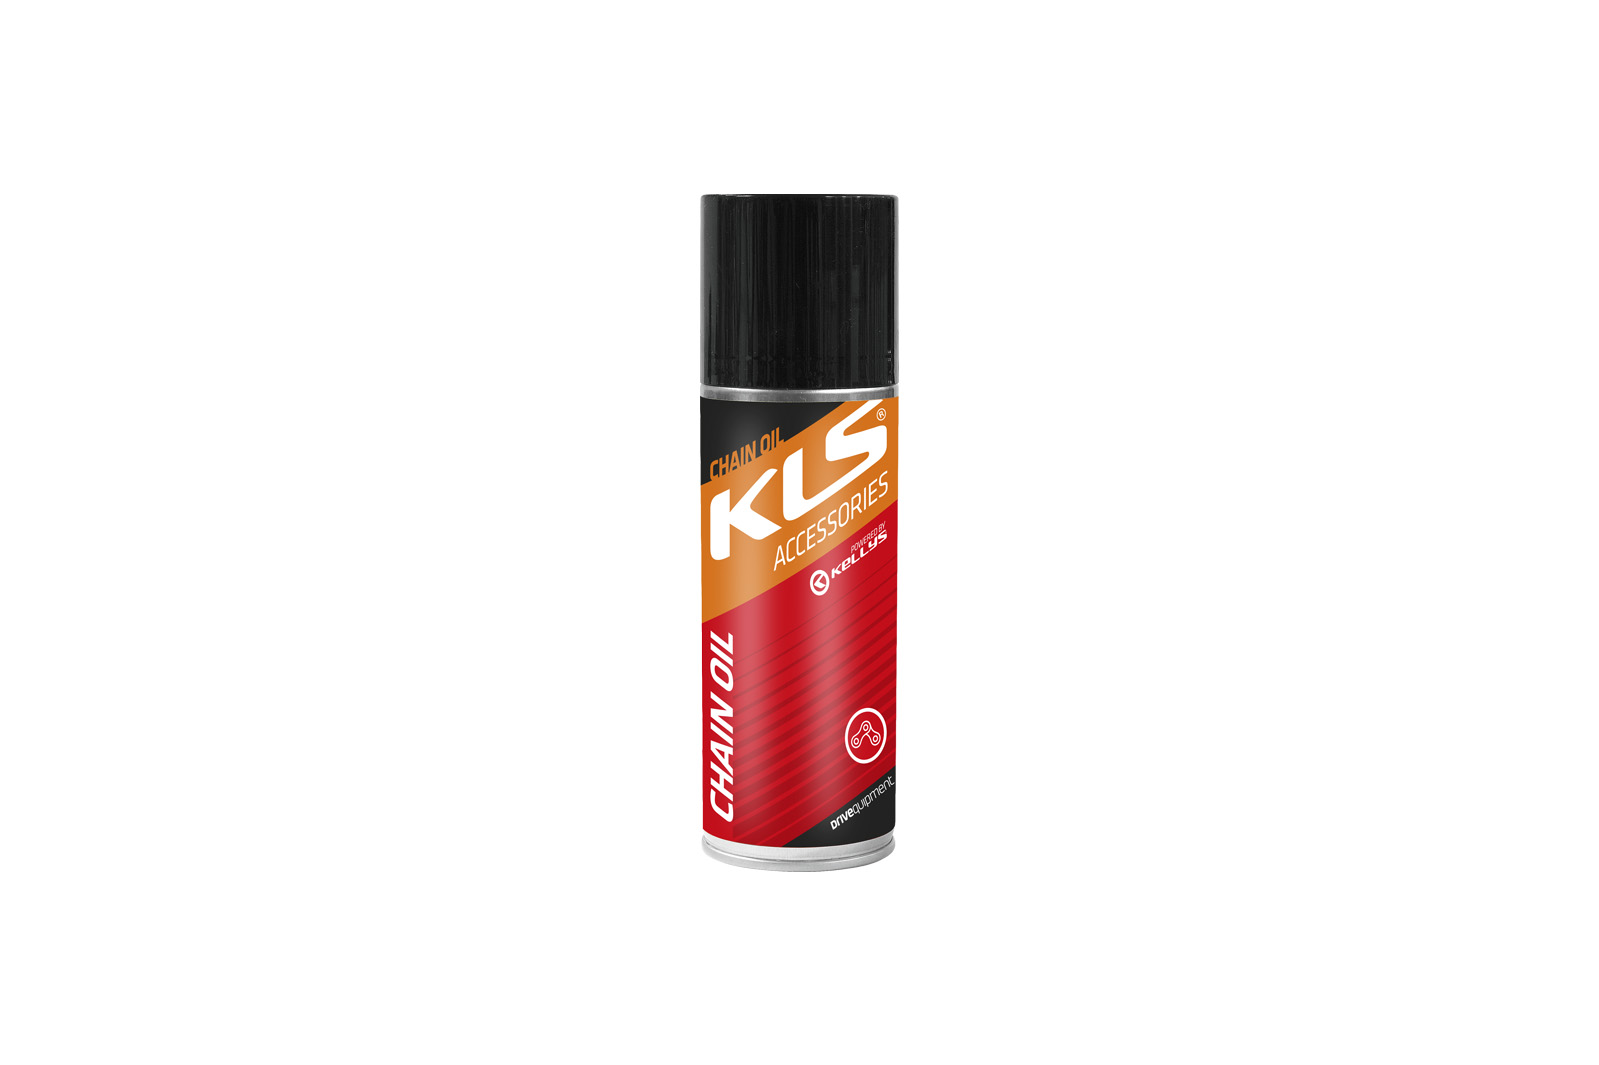 KLS CHAIN OIL Spray 200 ml - Bike Schmiede Biesenrode GbR